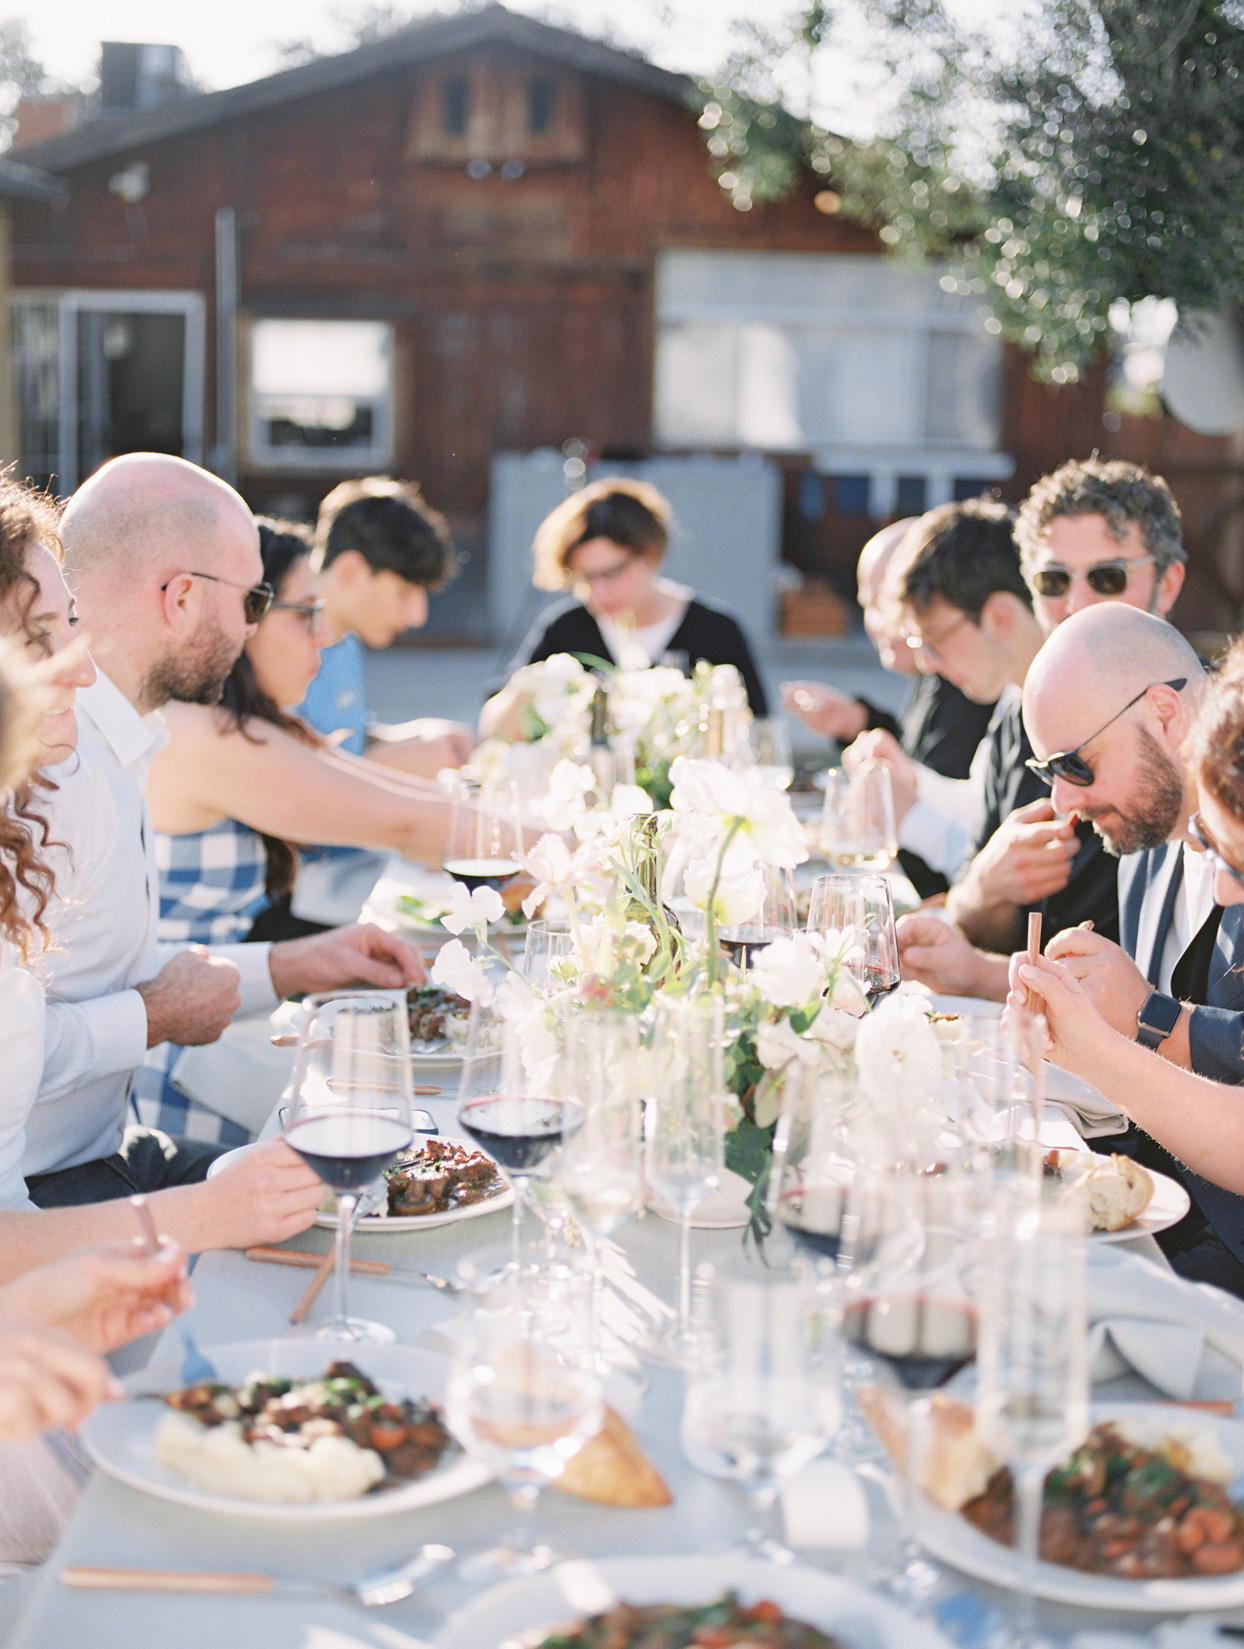 wedding guests sitting at outdoor table eating dinner